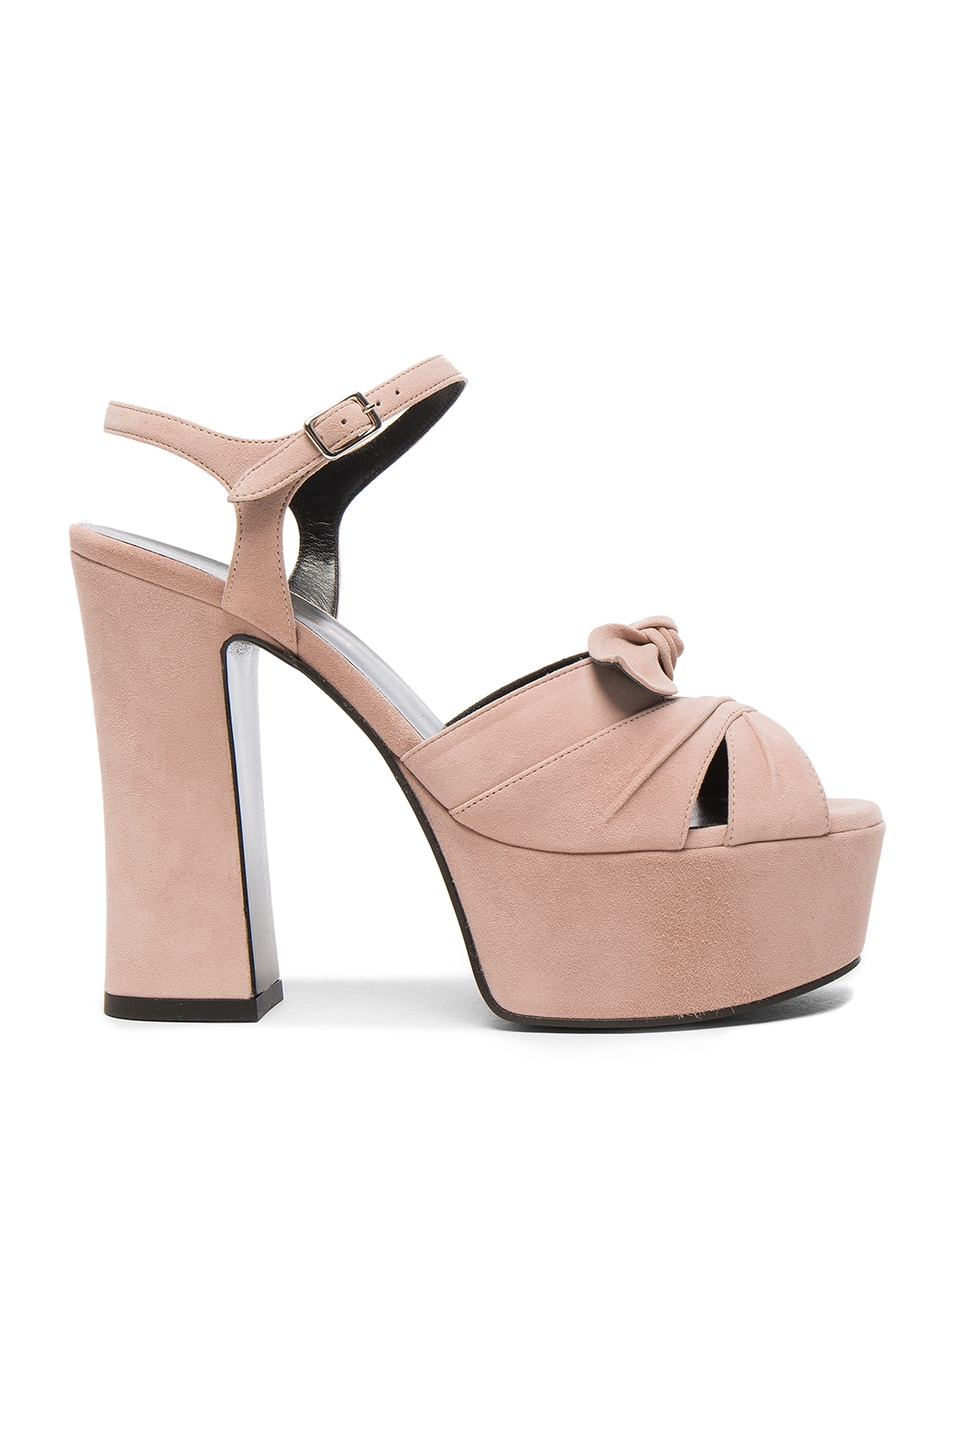 7638aacabcc Image 1 of Saint Laurent Candy Suede Platforms in Rose Antic